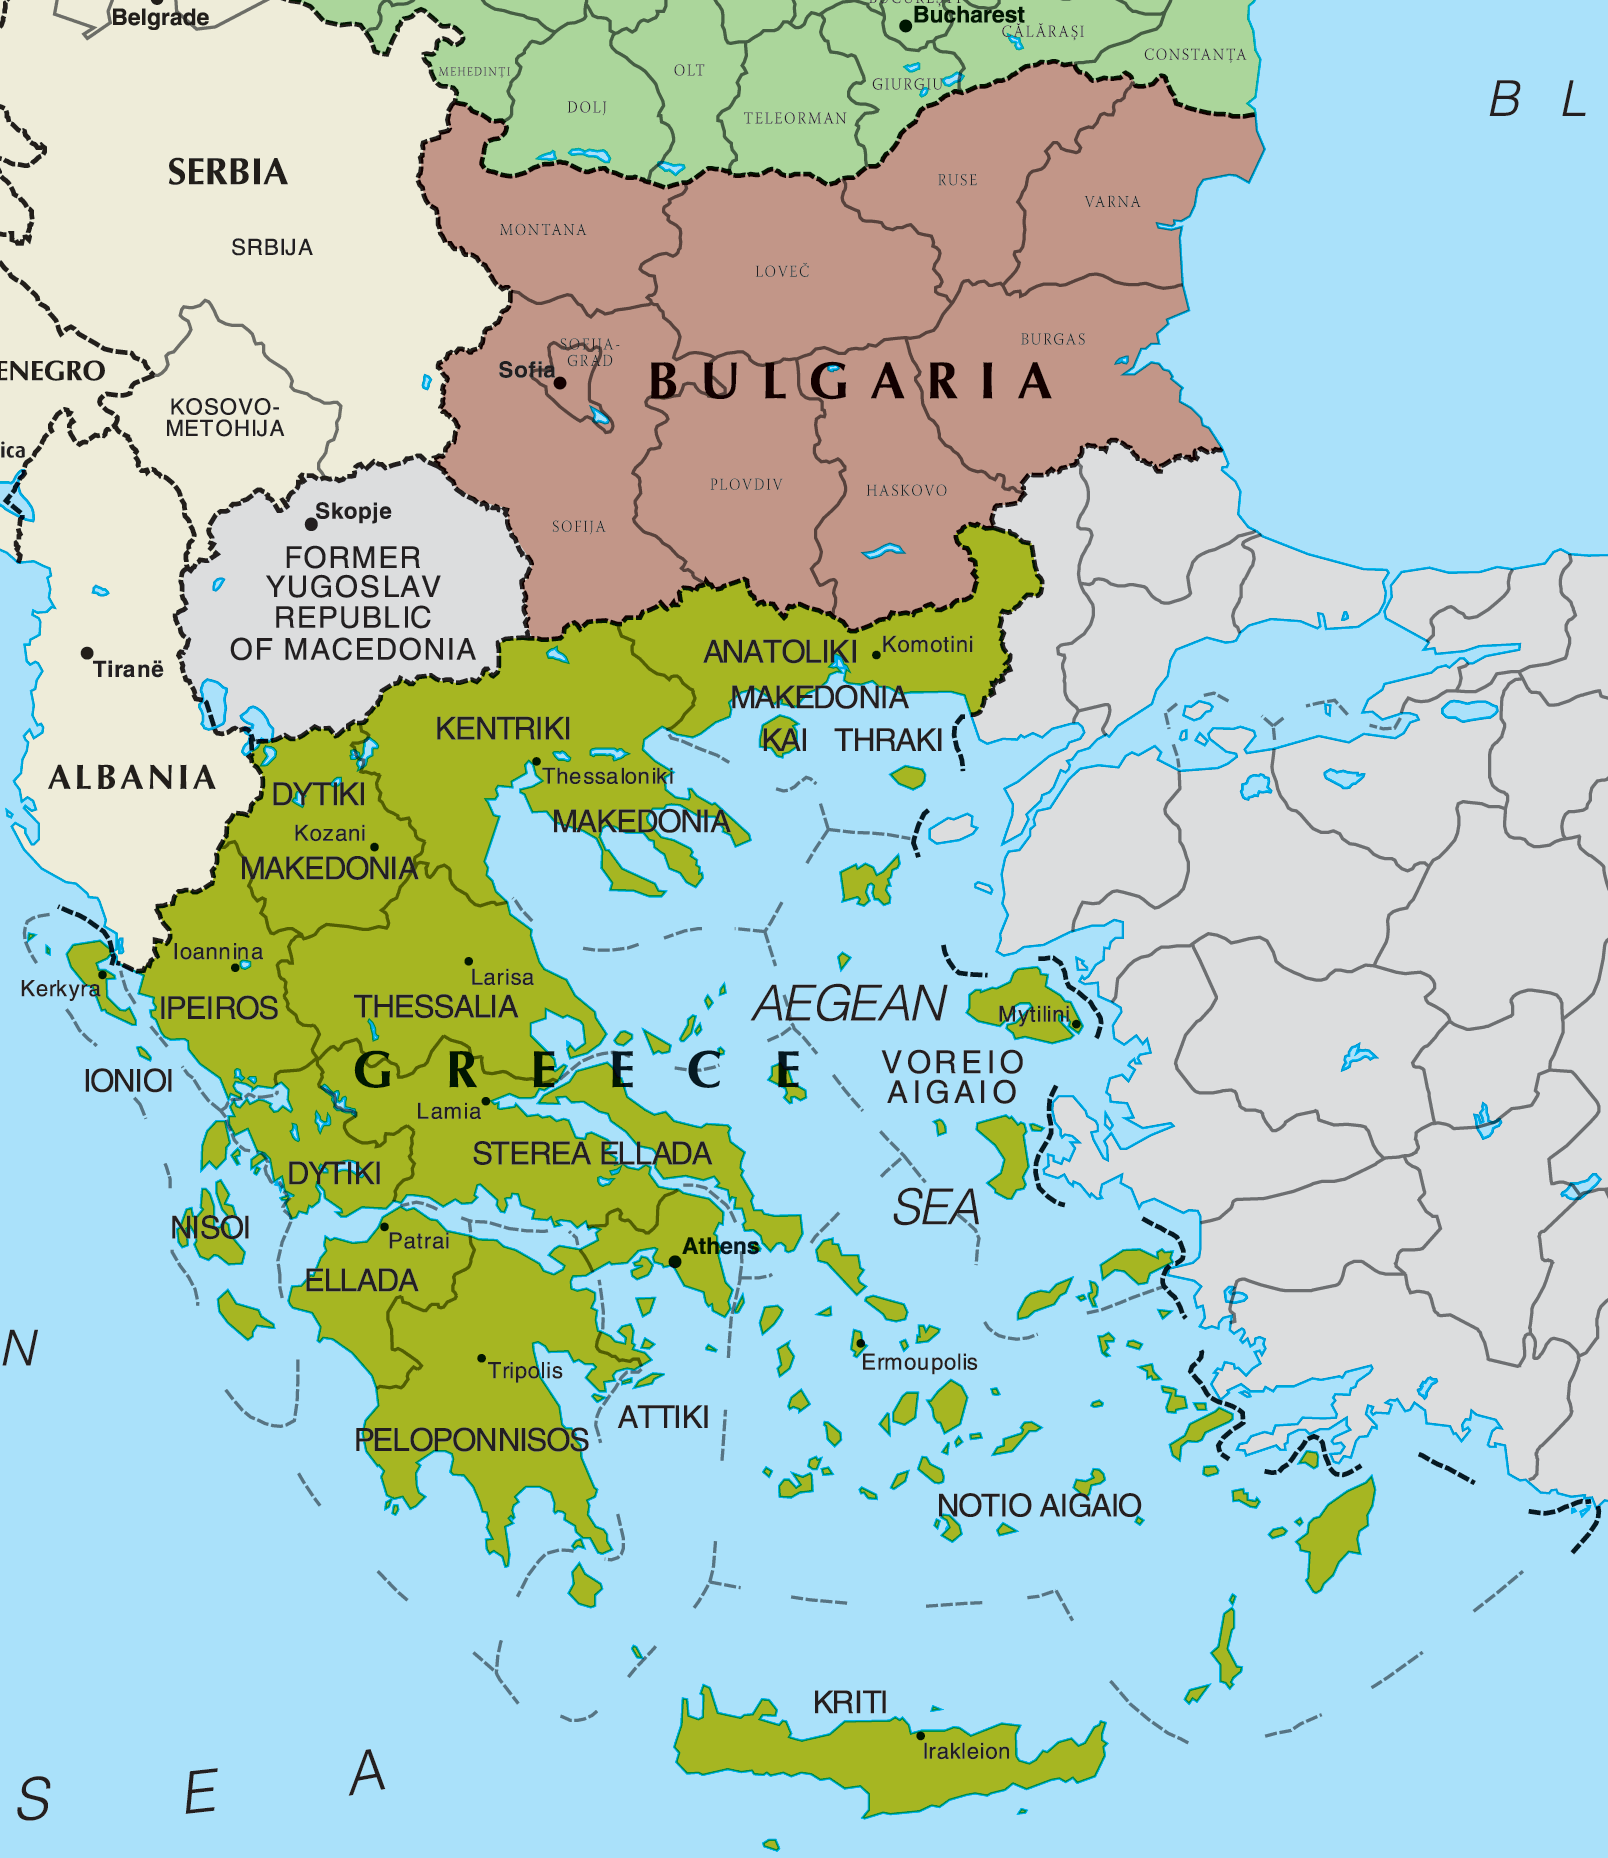 Bulgaria On Map Of World.Map Of Greece And Bulgaria Mapsof Net